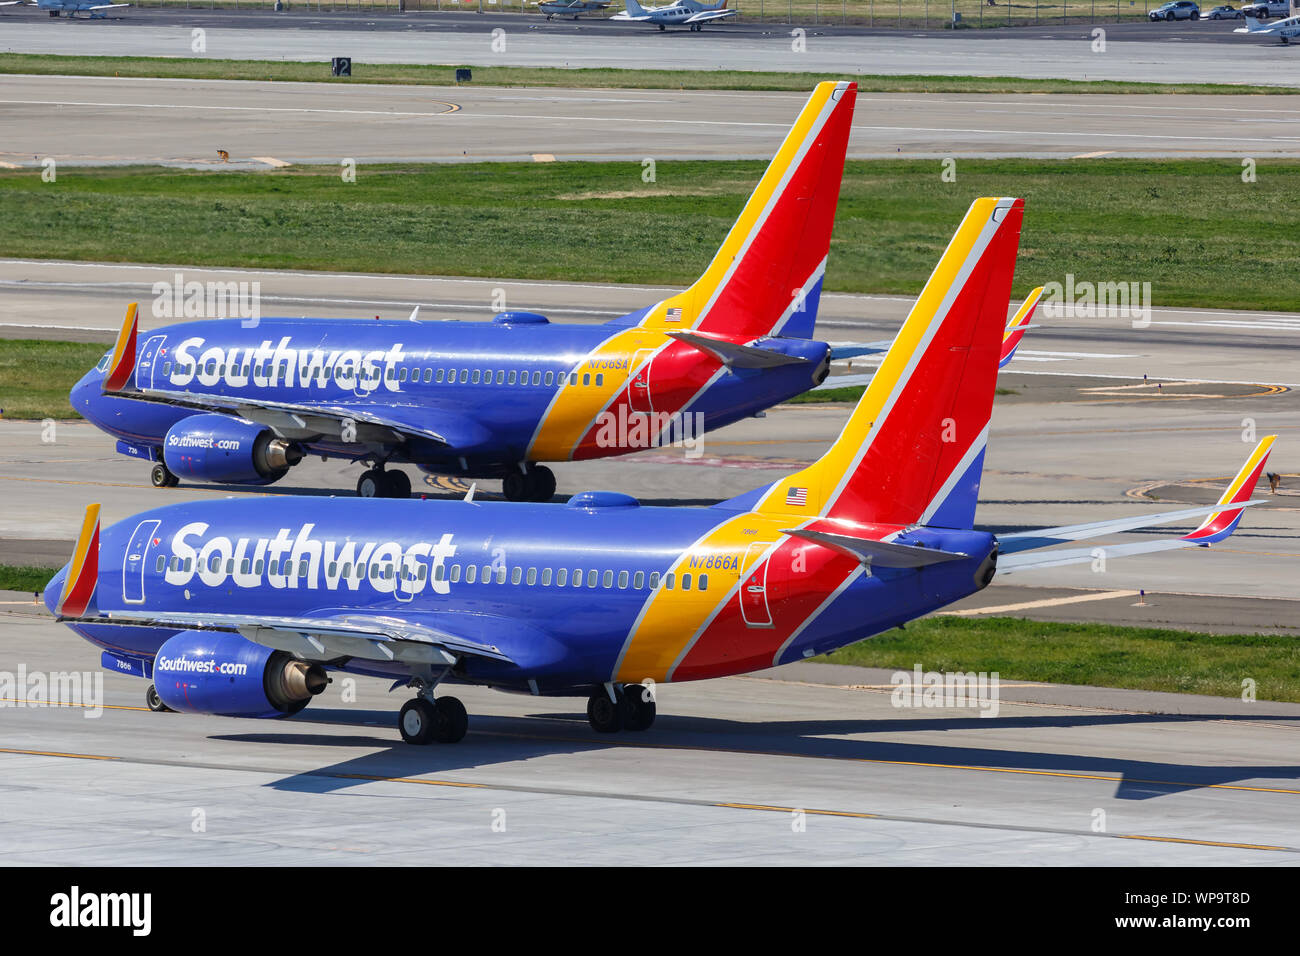 San Jose, California – April 10, 2019: Southwest Airlines Boeing 737-700 airplanes at San Jose airport (SJC) in the United States. Stock Photo